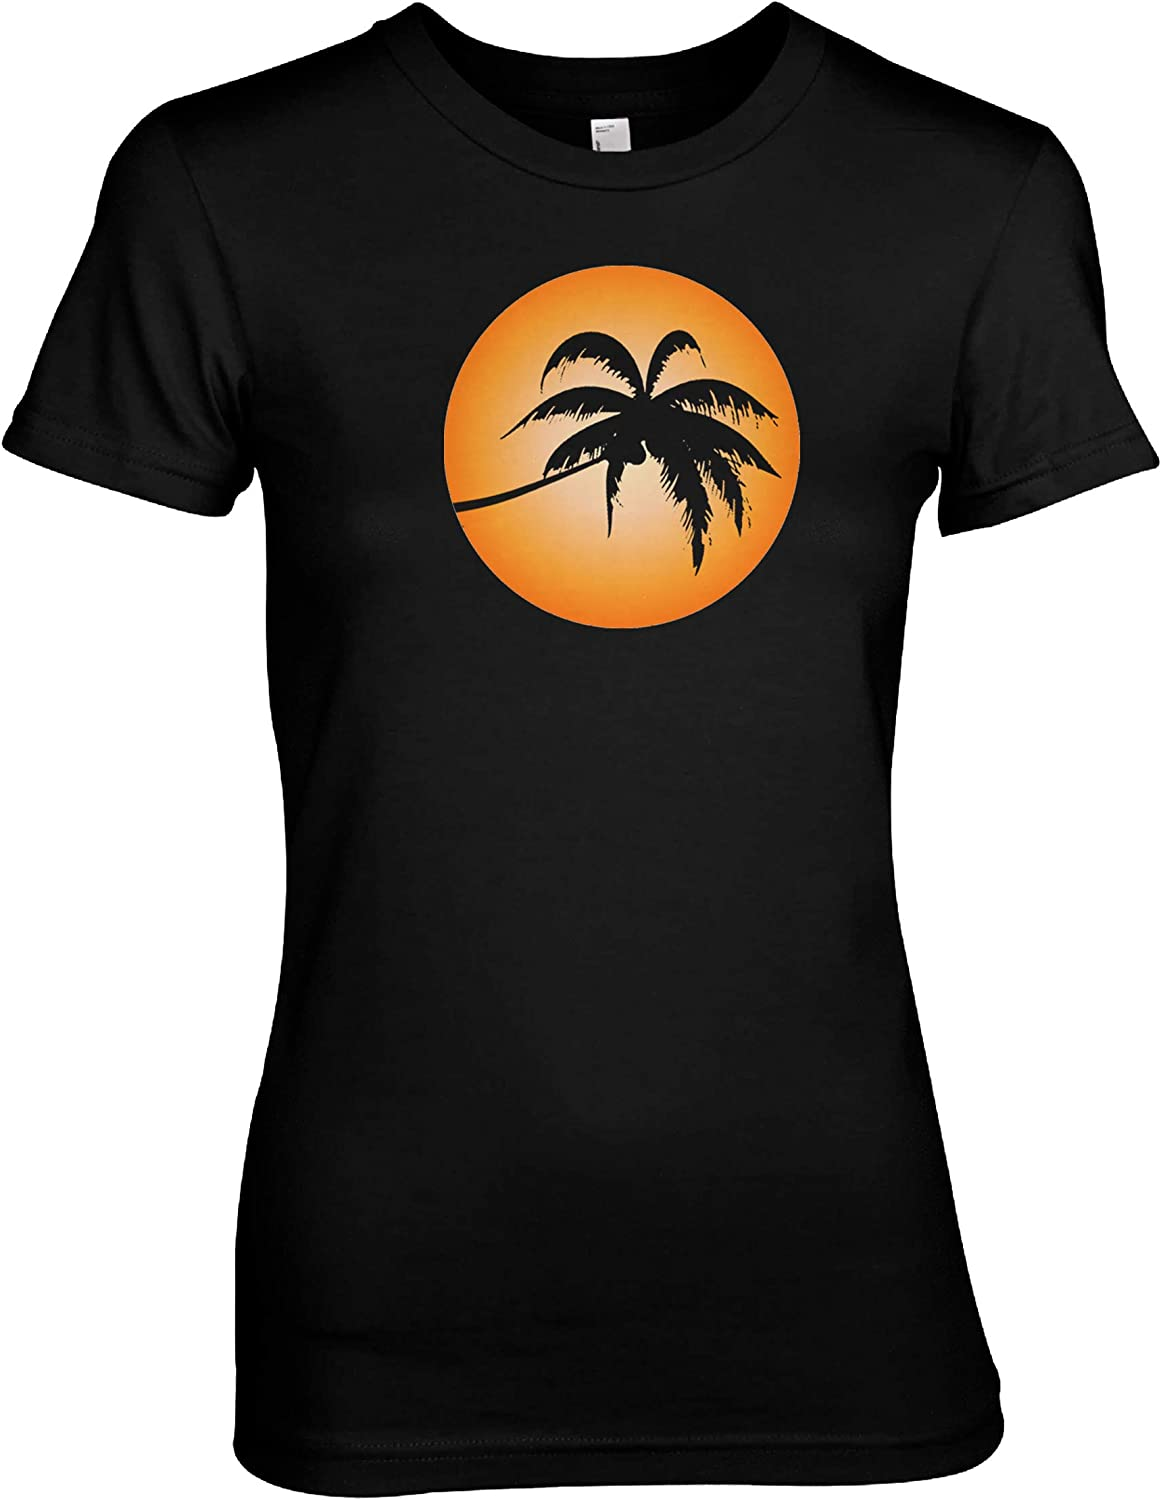 Palm Sun Cool Chilled Out Summertime T-Shirt Black